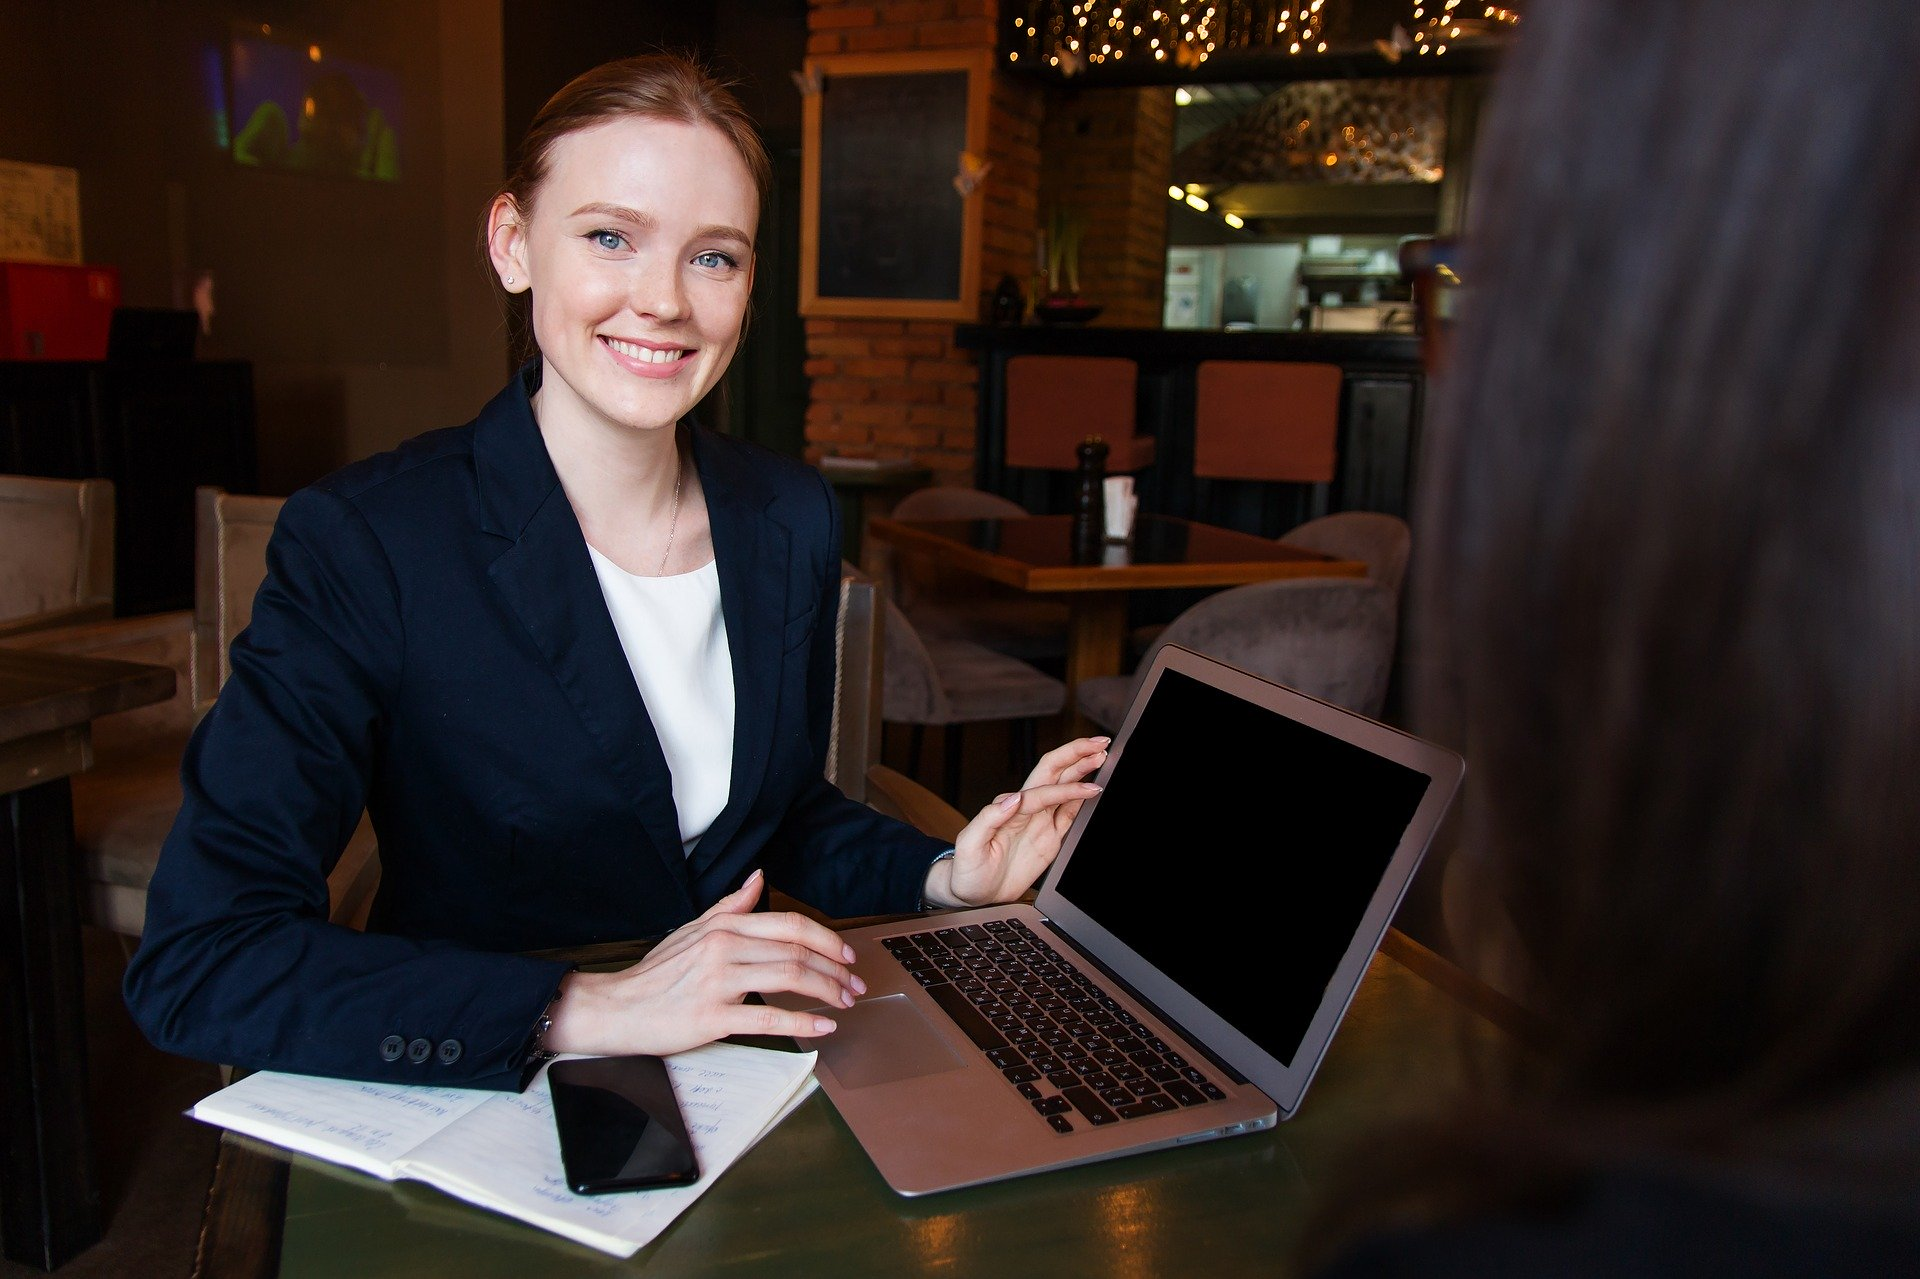 Transition From Solo Expert to an Effective Manager